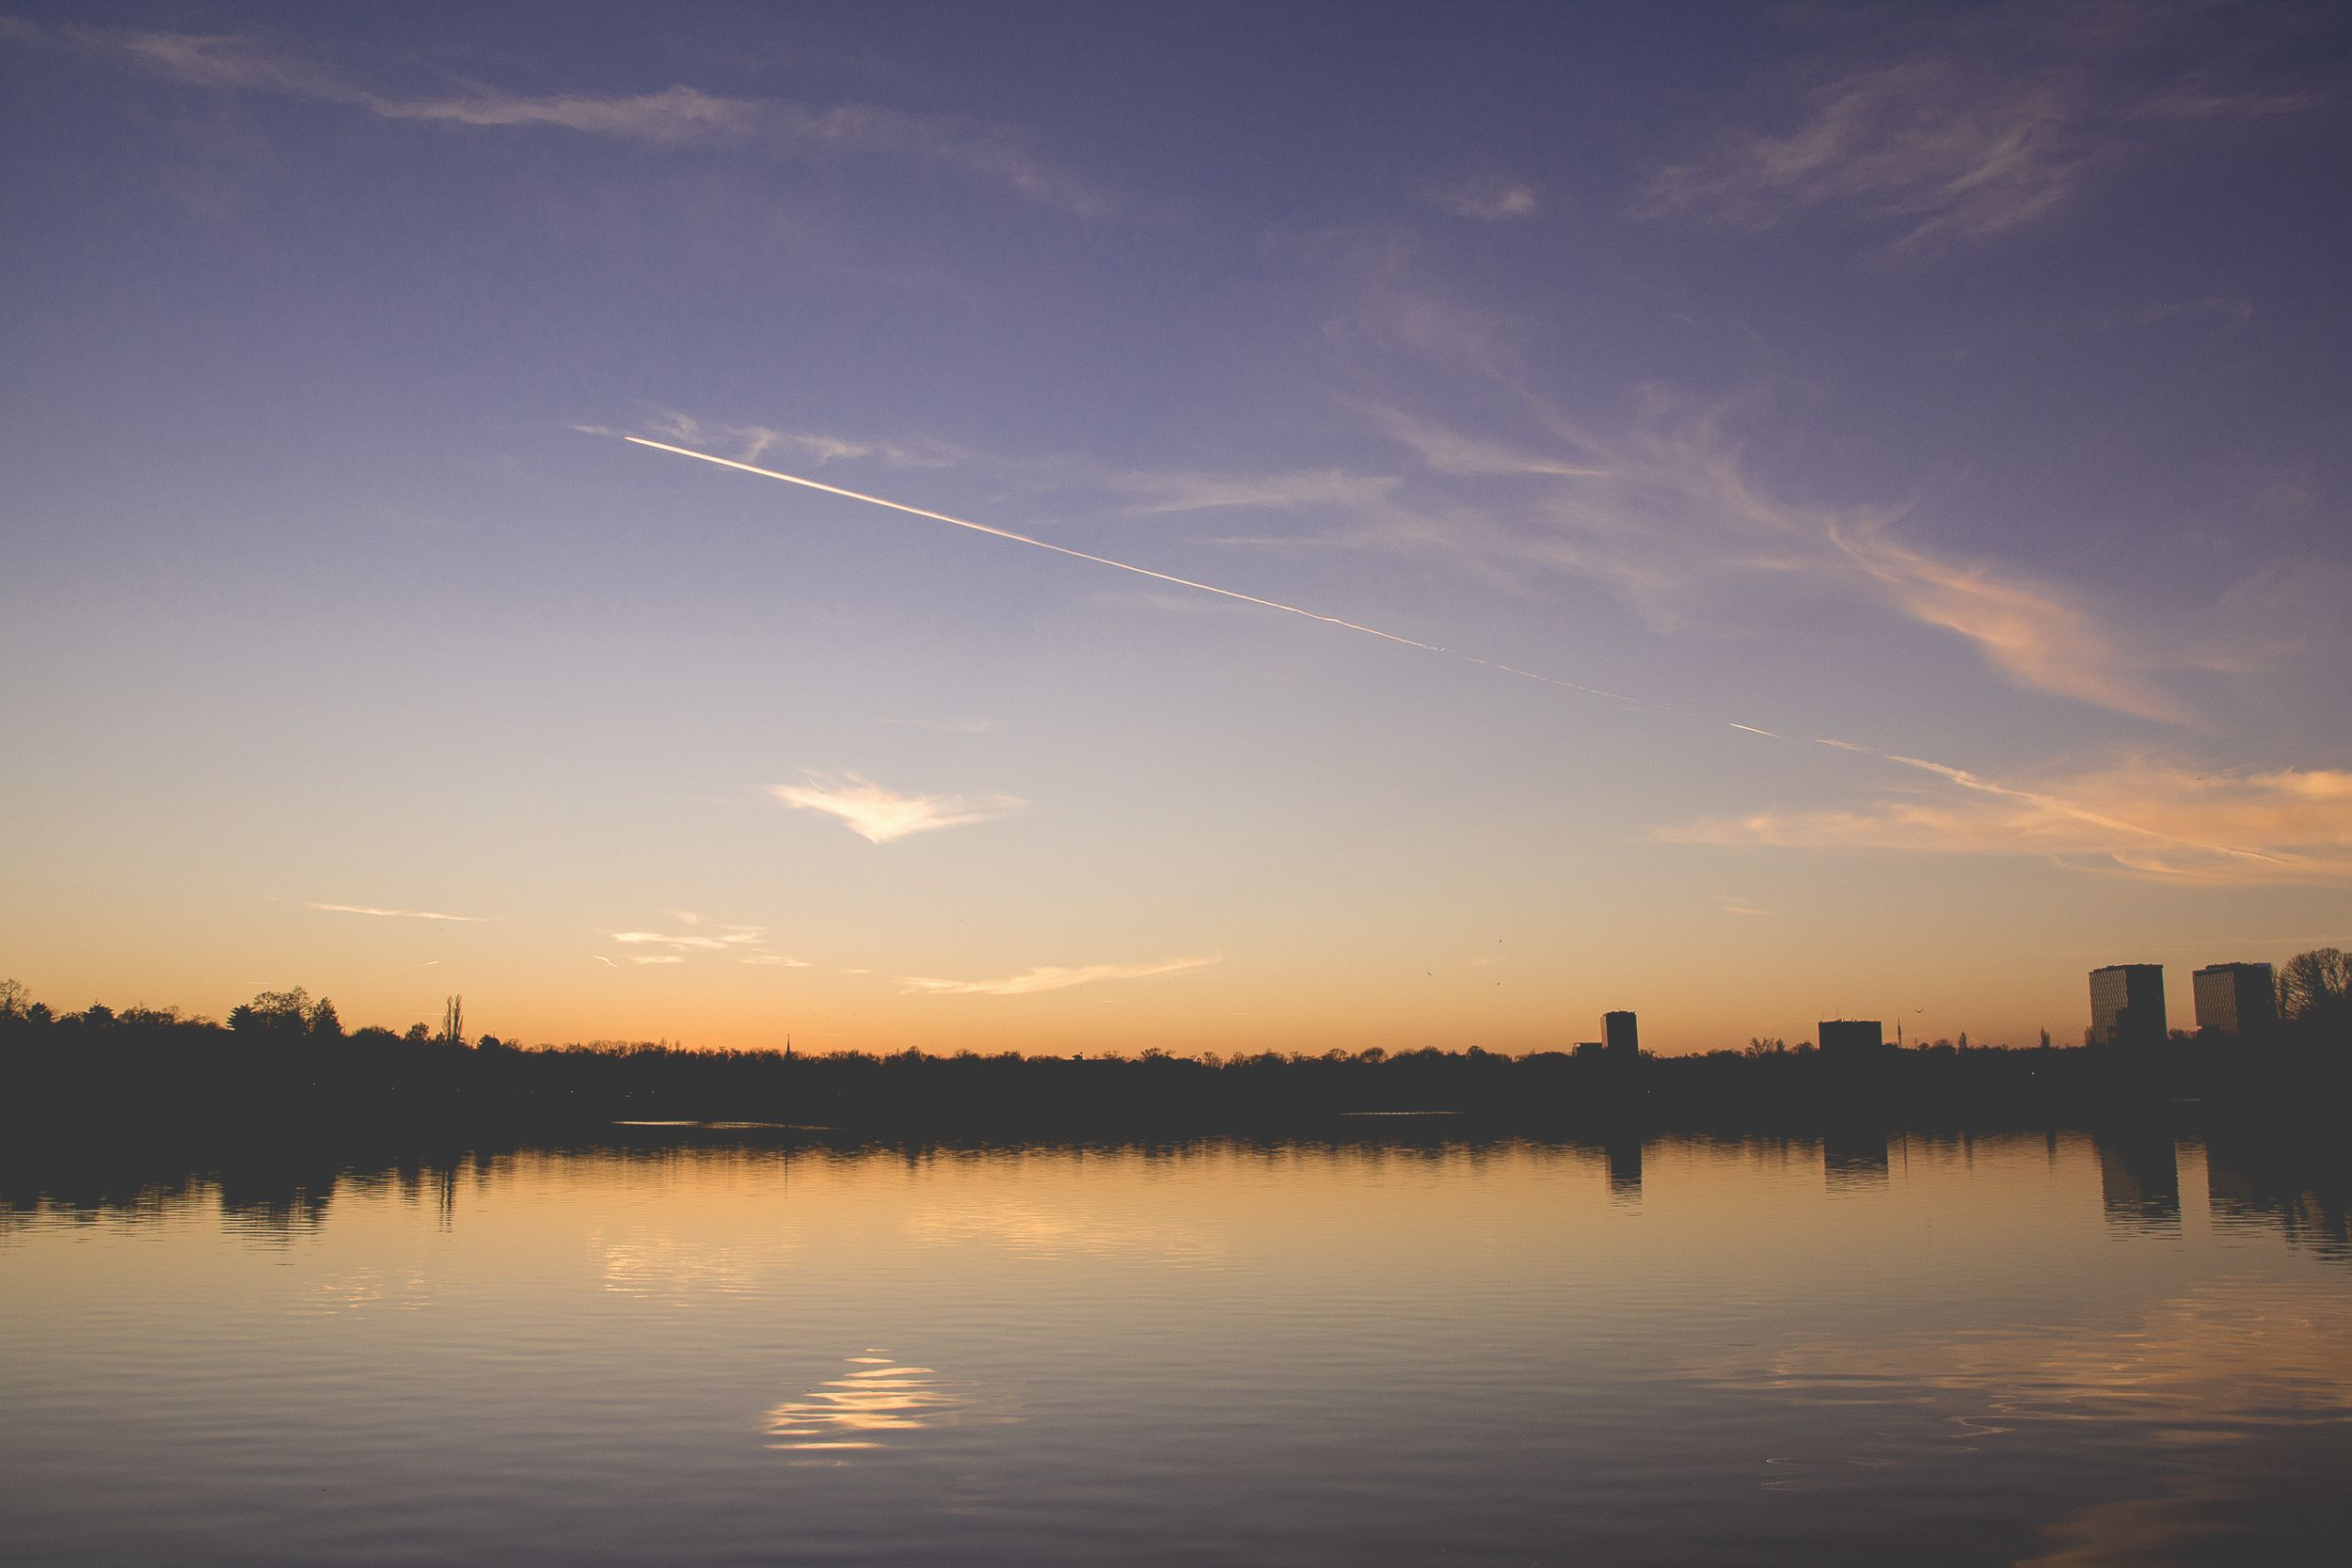 Twilight lines down by the lake #reflection #mirror #clouds #colorful #lines #silhouettes #blue #sky